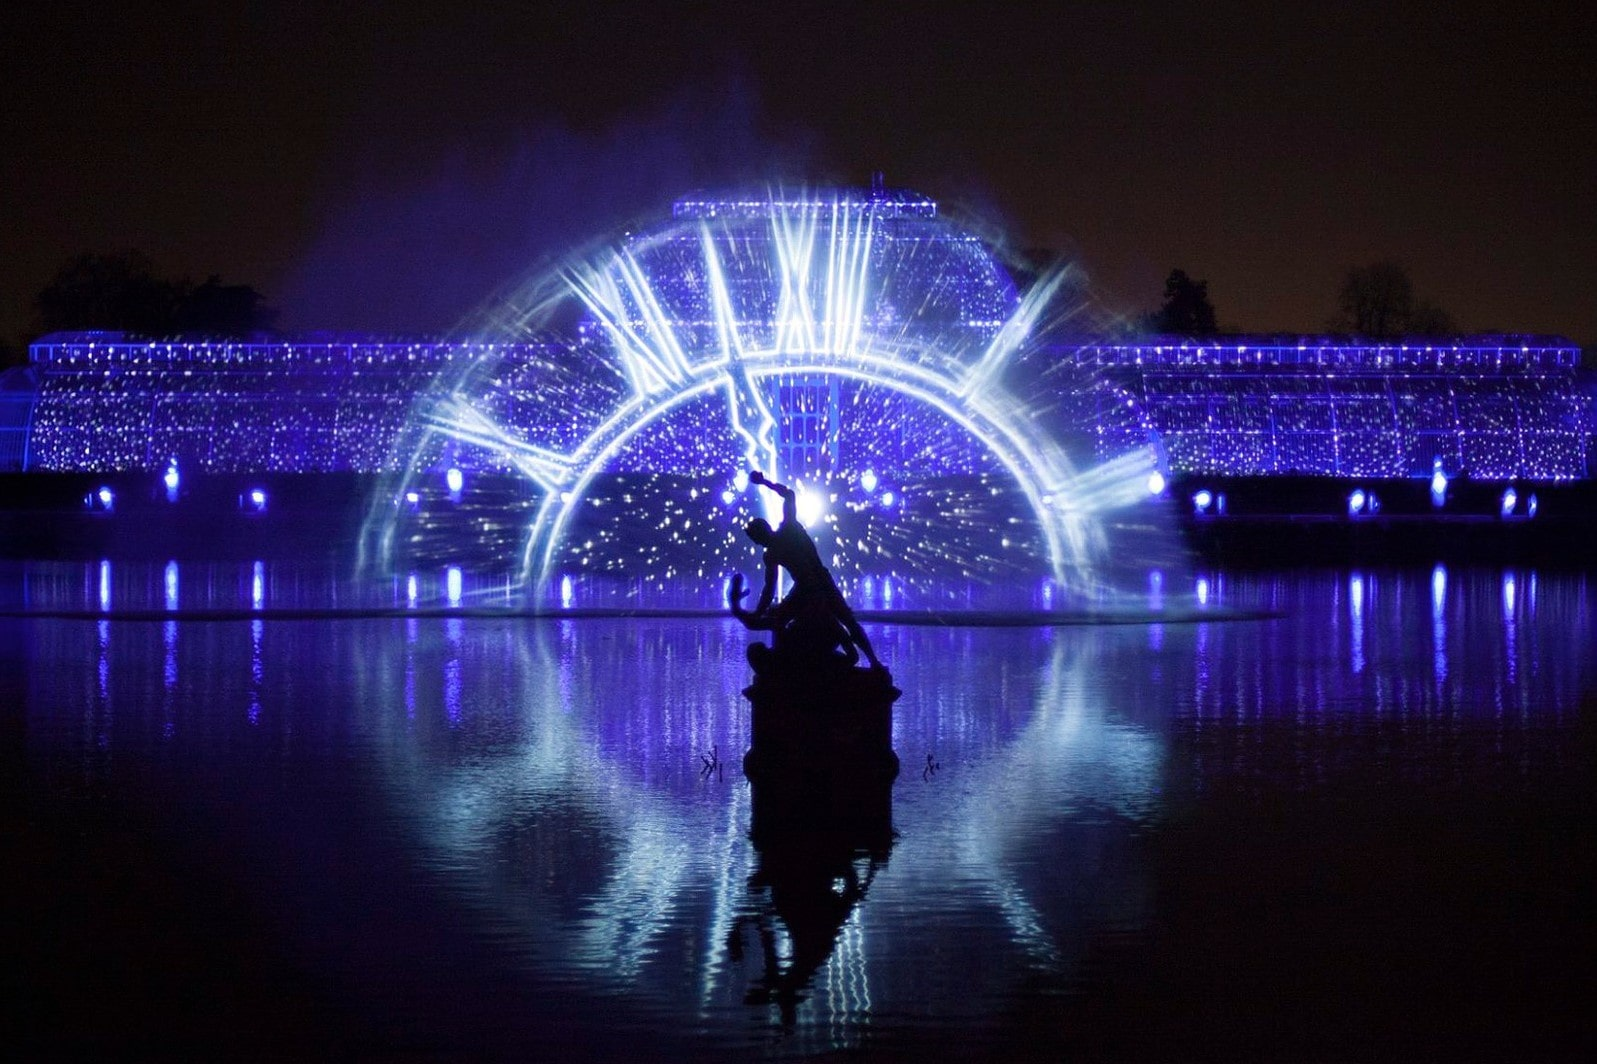 man-and-woman-dancing-at-night-in-a-lit-up-kew-gardens